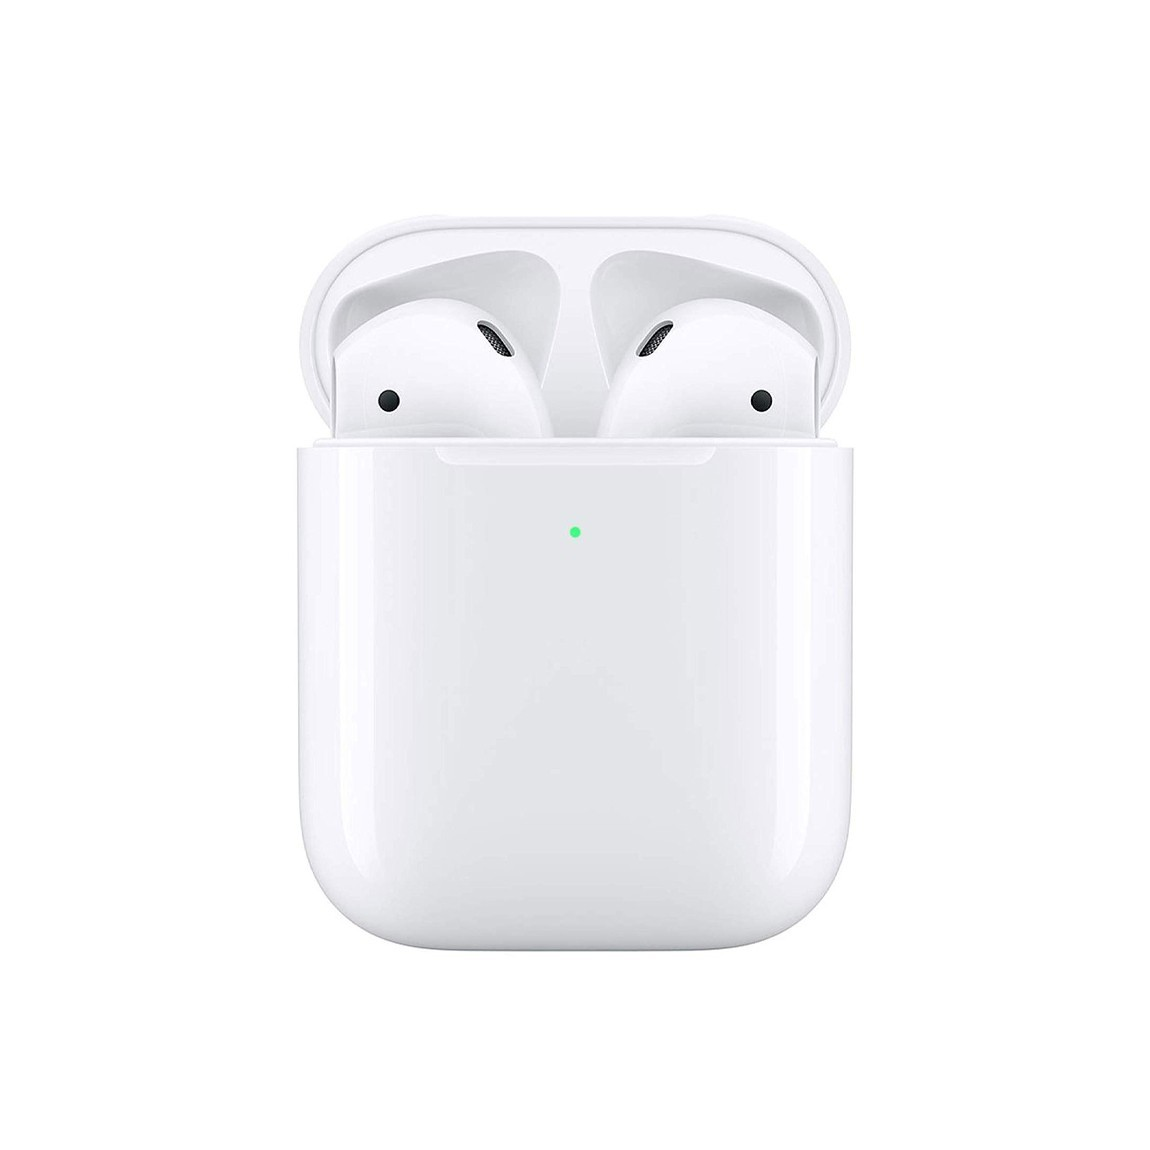 Apple AirPods 2 - In-Ear Kopfhörer mit kabellosem AirPod Ladecase